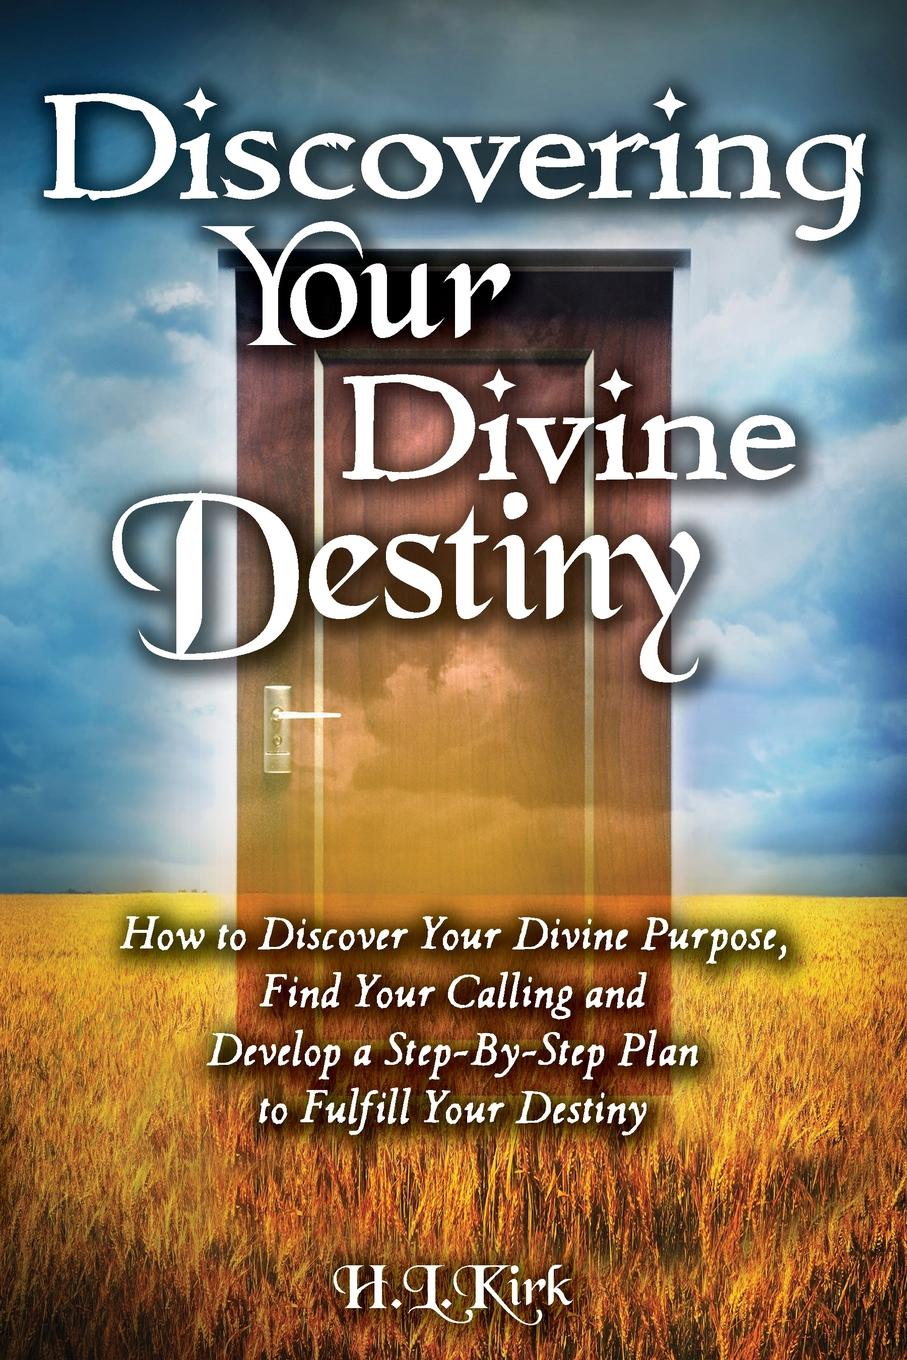 Kirk L Heather, Worshops Discovery Discoverying Your Divine Destiny. How to Discover Your Divine Purpose, Find Your Calling and Develop a Step-By-Step Plan to Fulfill Your Destiny benjamin bonetti how to change your life who am i and what should i do with my life isbn 9780857084613